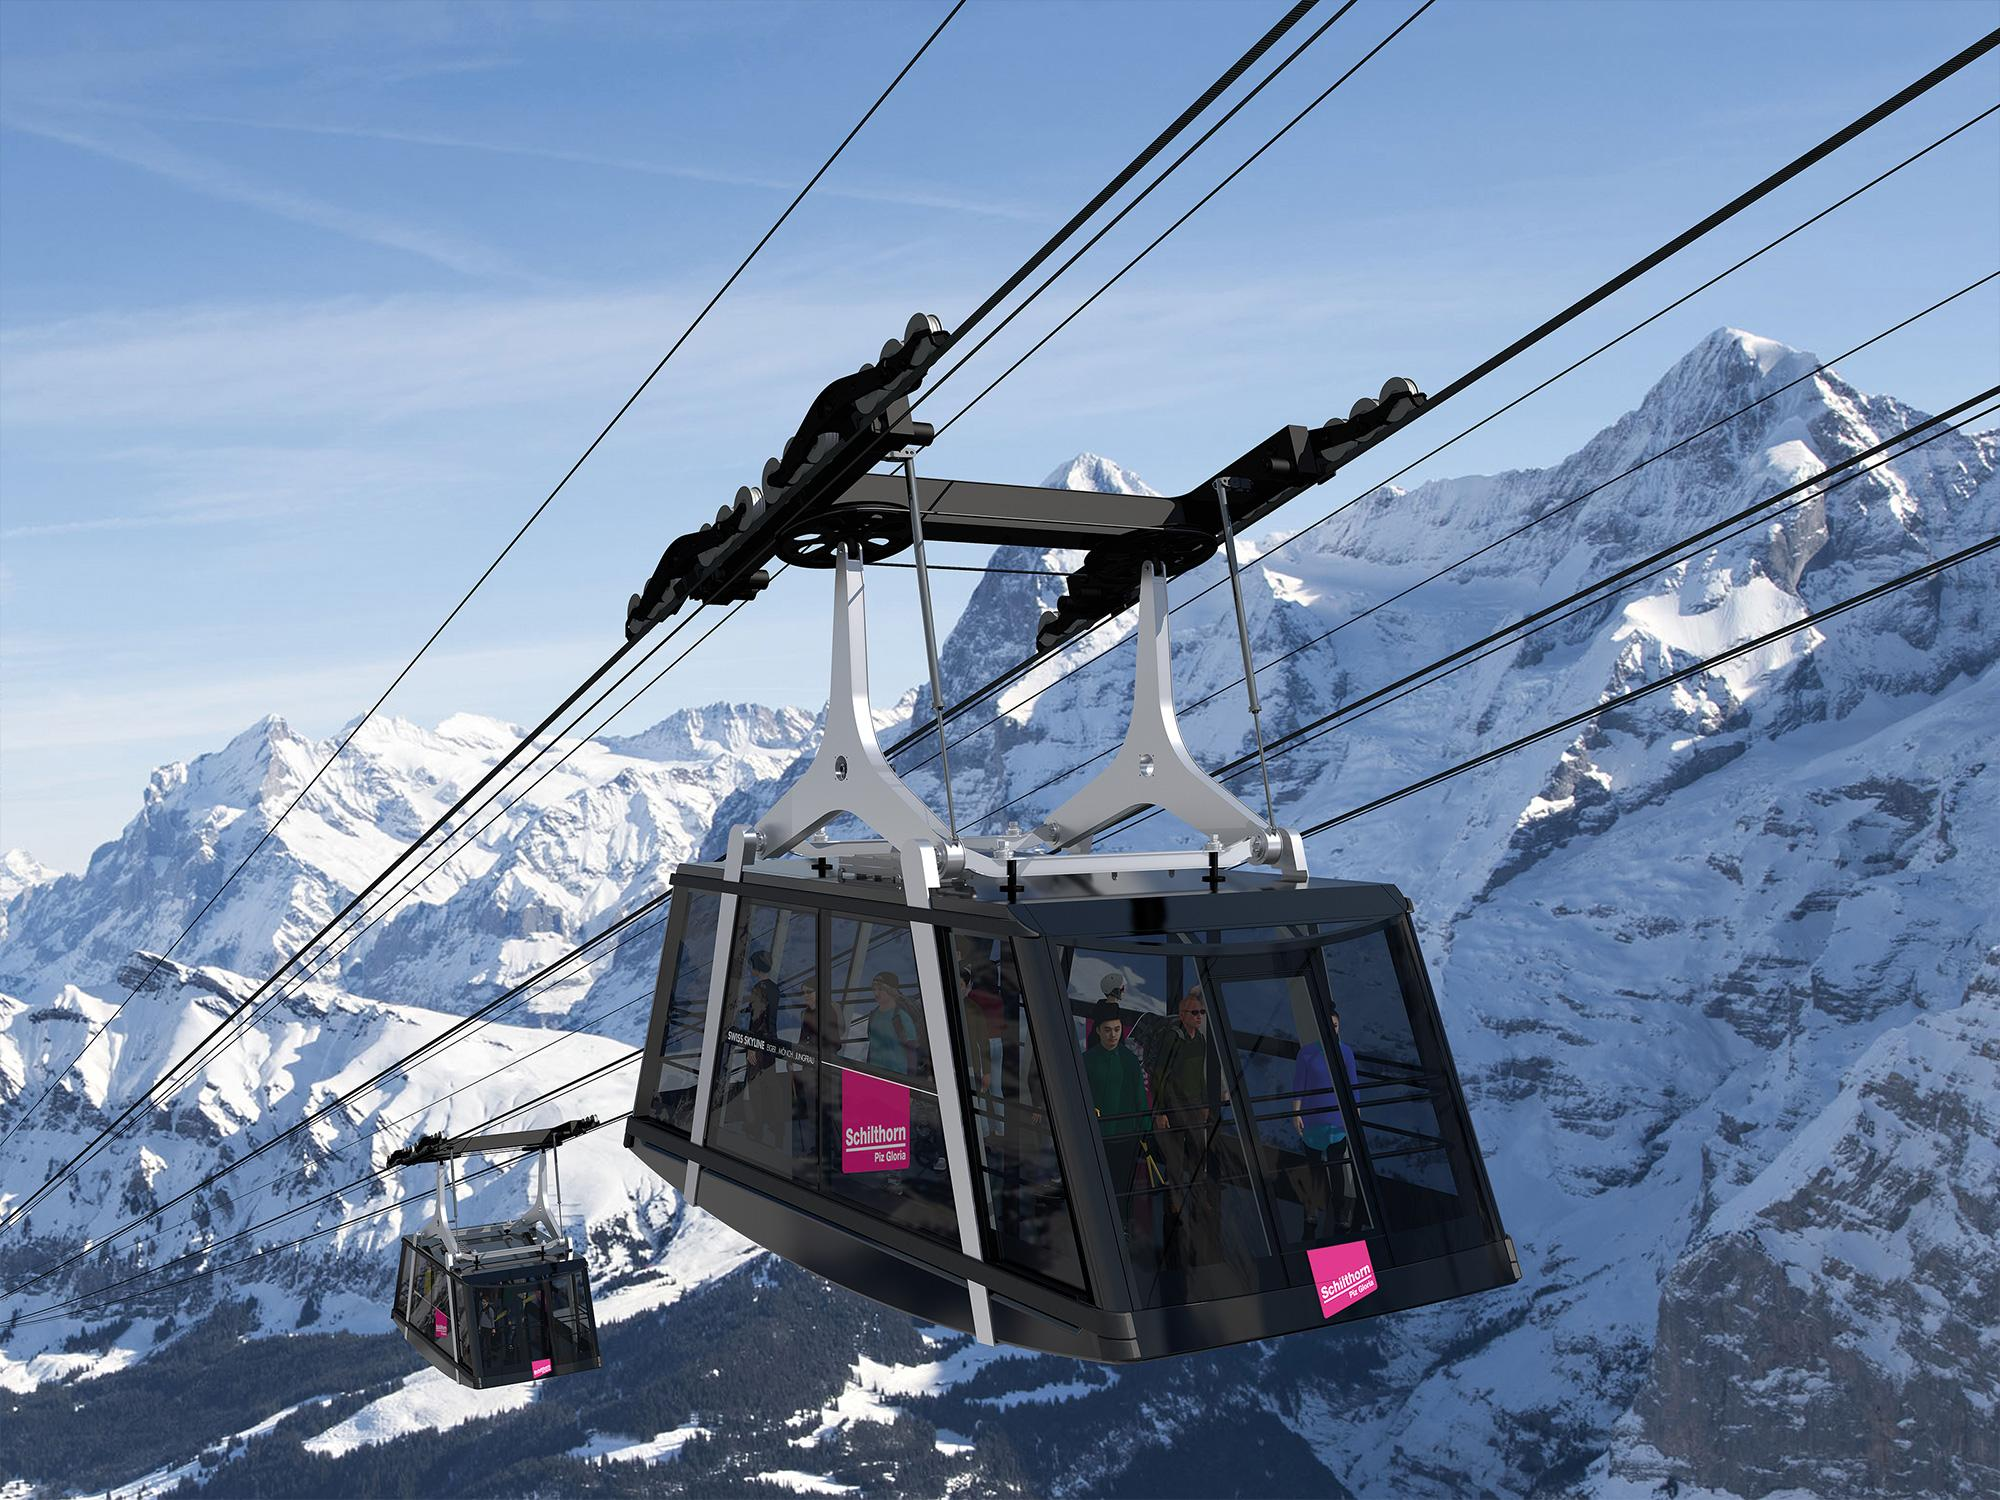 schilthornbahn20xx 3 start - A new cableway for Piz Gloria